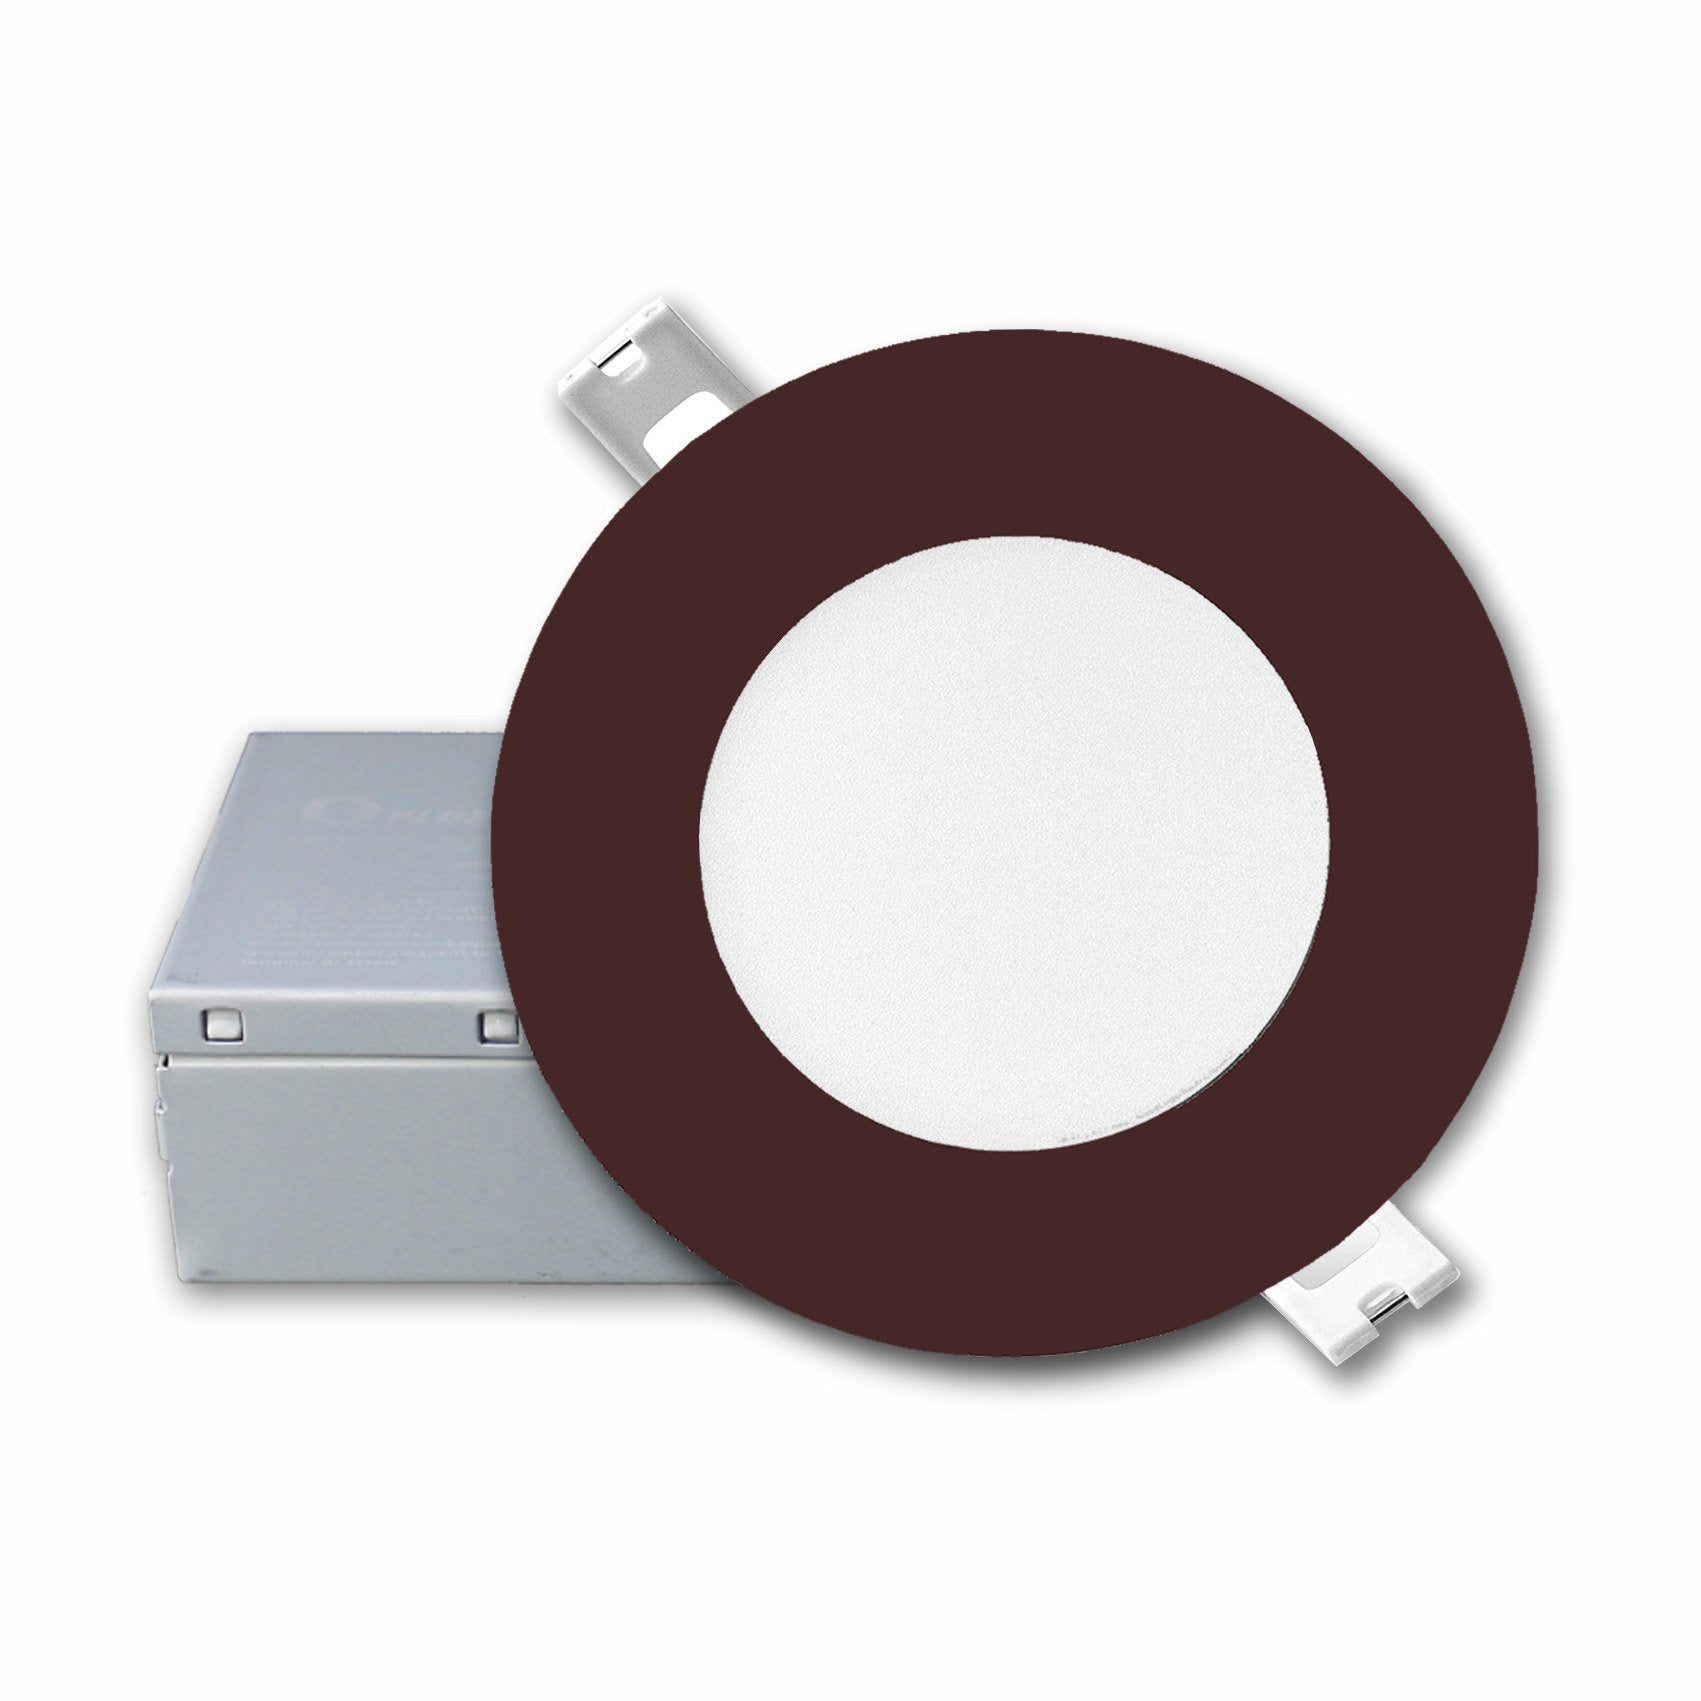 QPlus 4 Inch Slim Recessed LED Pot Lights with Bronze Trim Rings - QPlus Home - Brighten Your Life